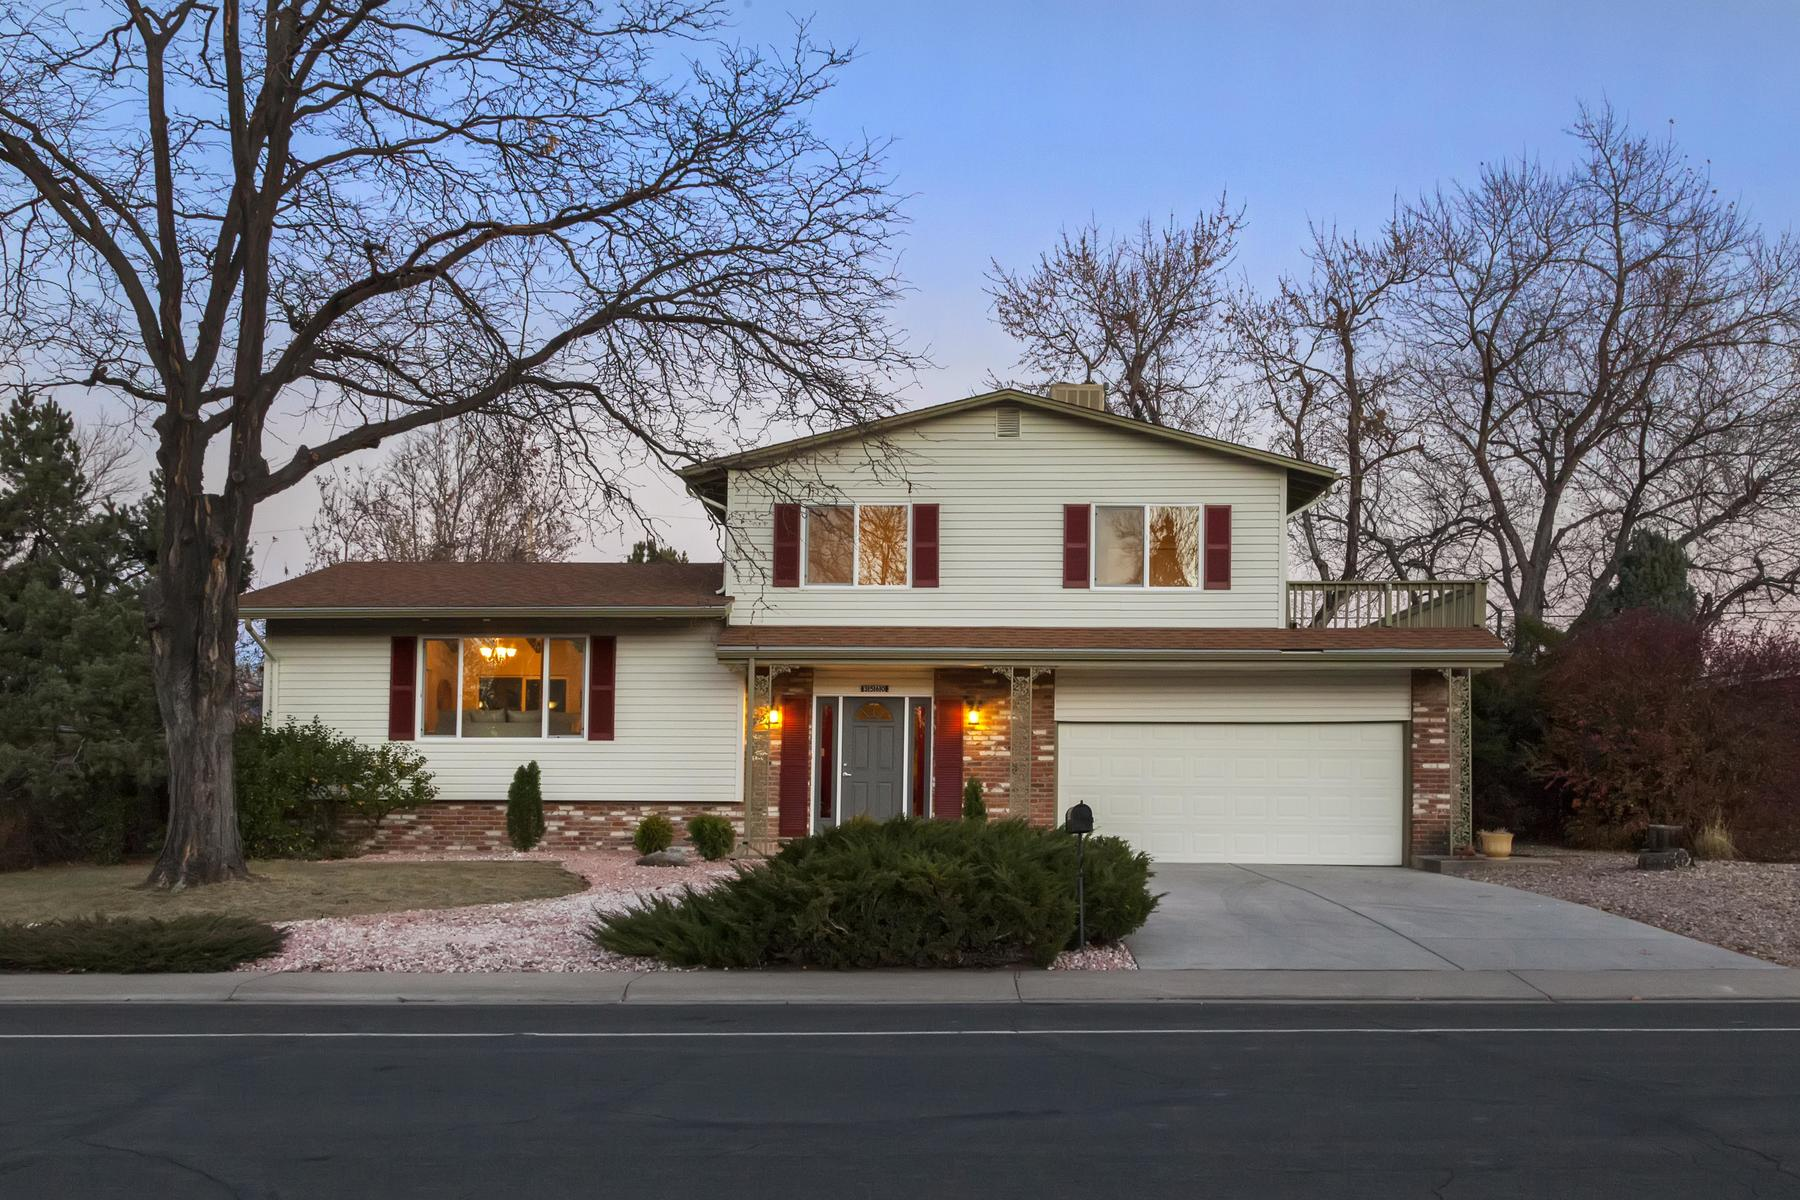 Single Family Home for Active at Newly remodeled! 3560 Ward Road Wheat Ridge, Colorado 80033 United States